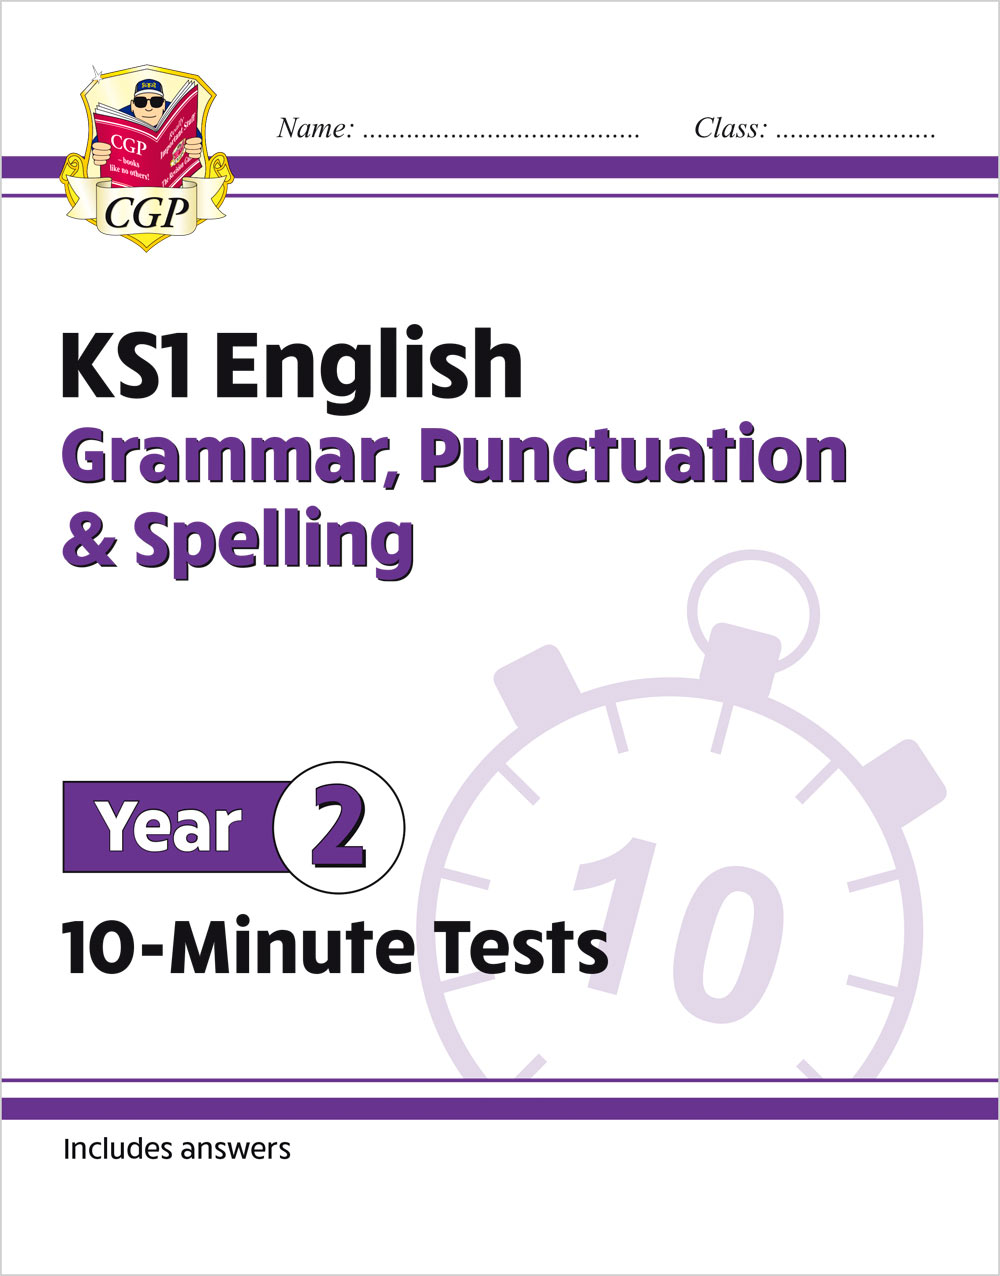 E2GXP11 - New KS1 English 10-Minute Tests: Grammar, Punctuation & Spelling - Year 2